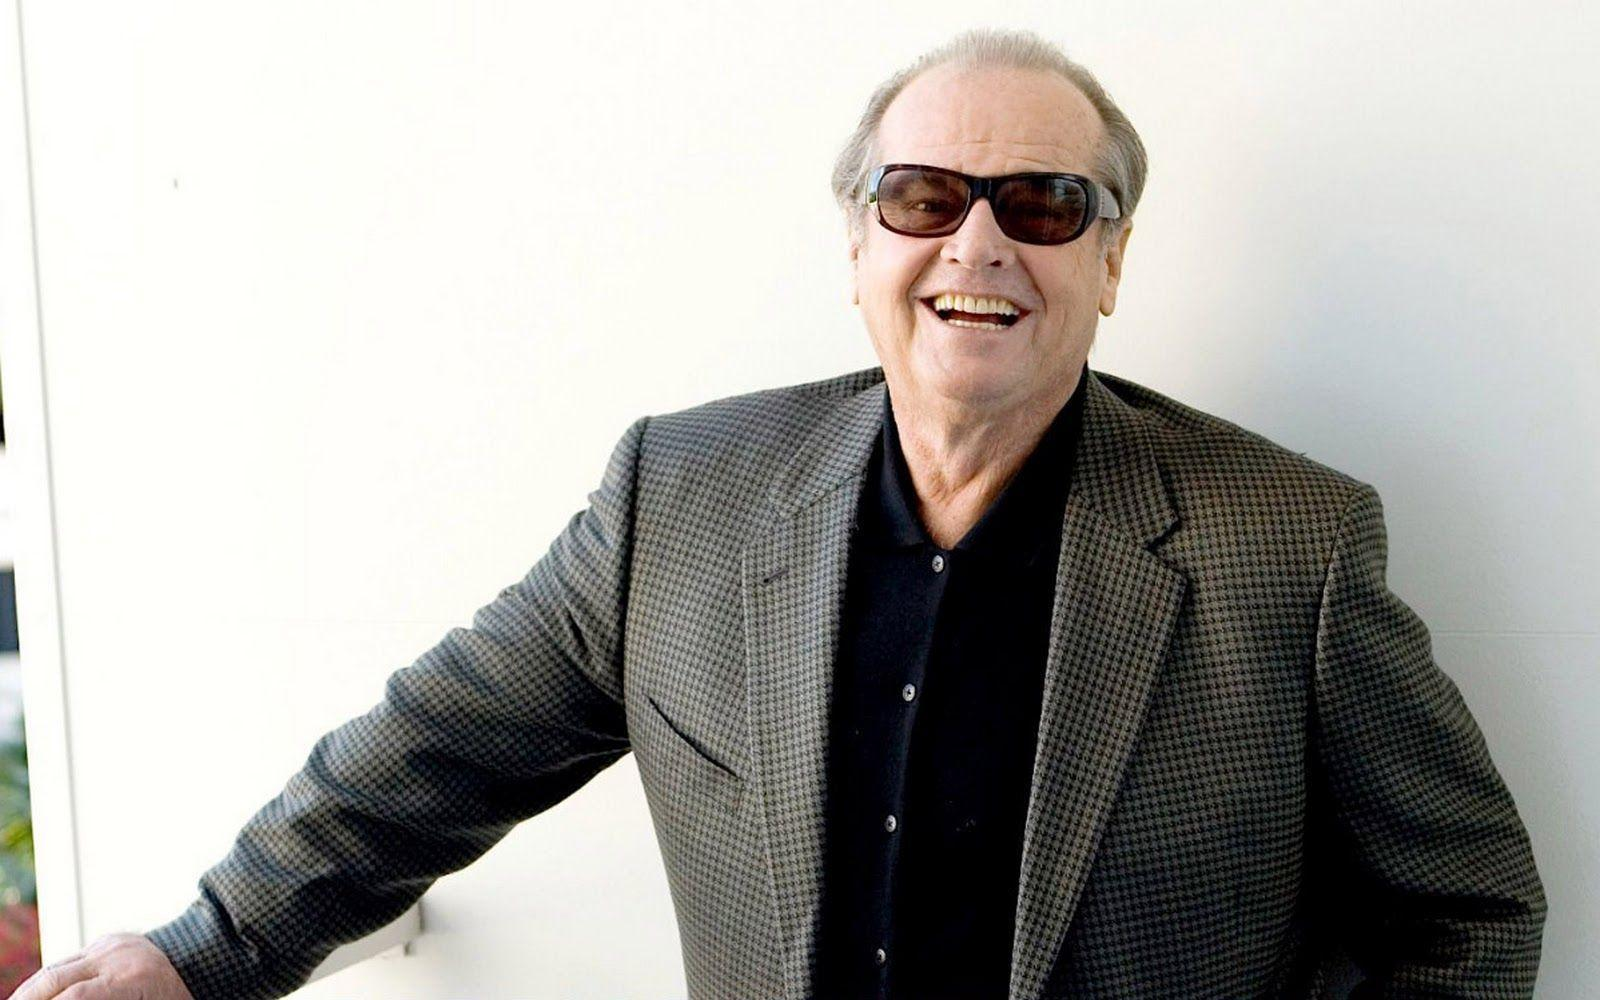 Jack Nicholson Wallpapers - Barbaras HD Wallpapers